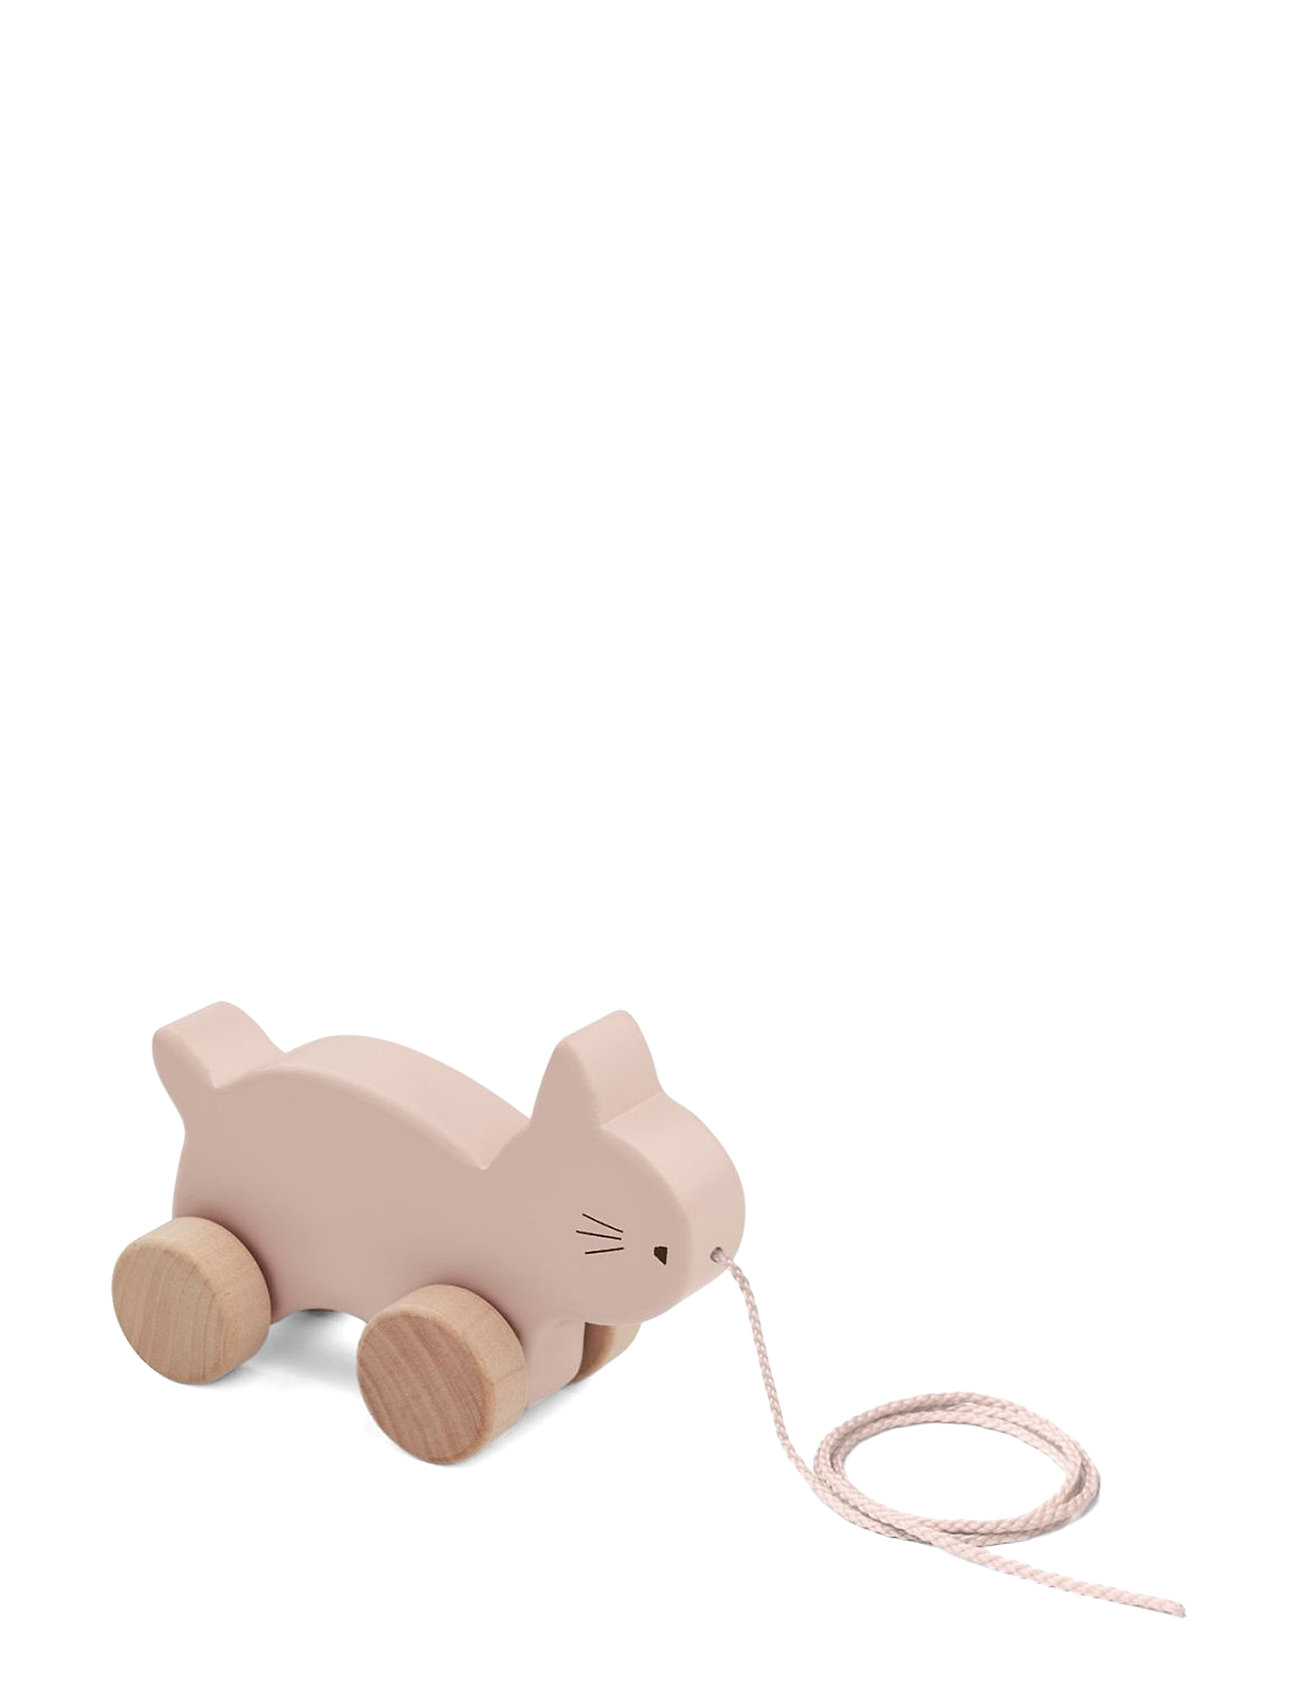 Liewood Abby pull along toy - CAT ROSE